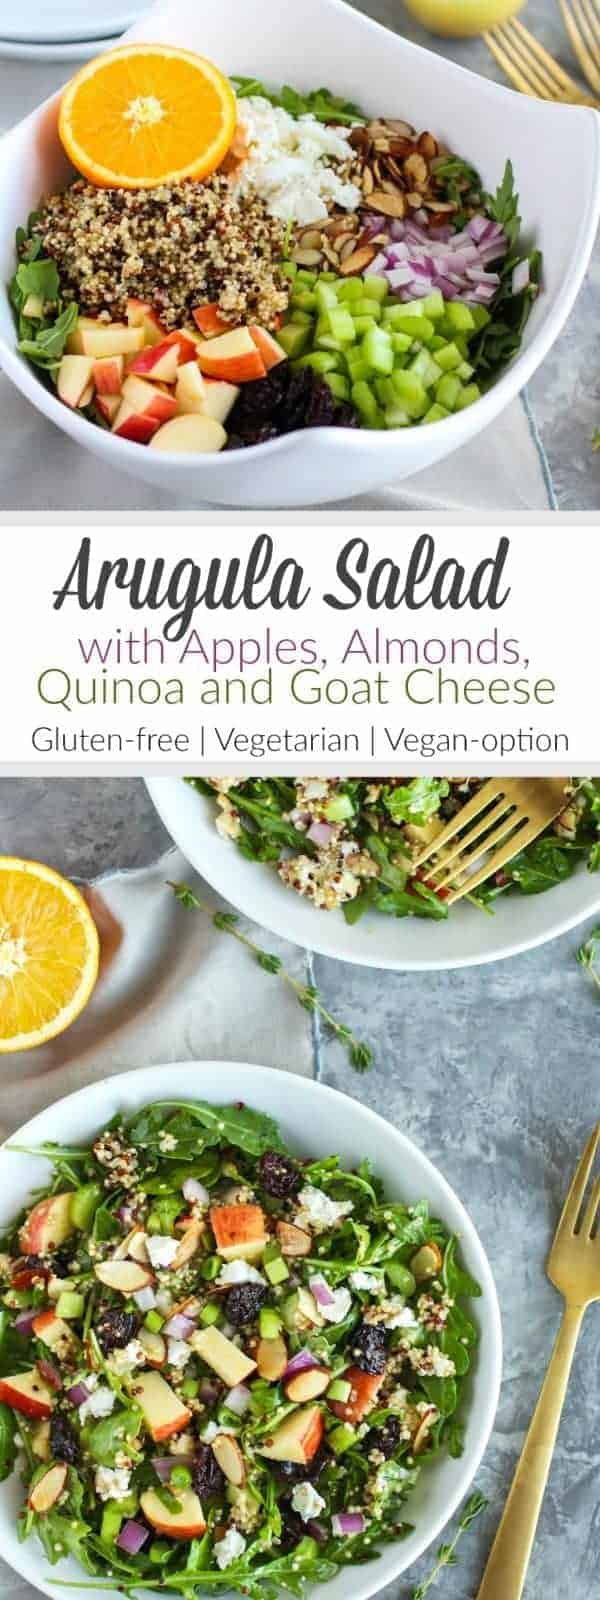 Pinterest image for Arugula Salad with Apples, Almond, Quinoa and Goad Cheese